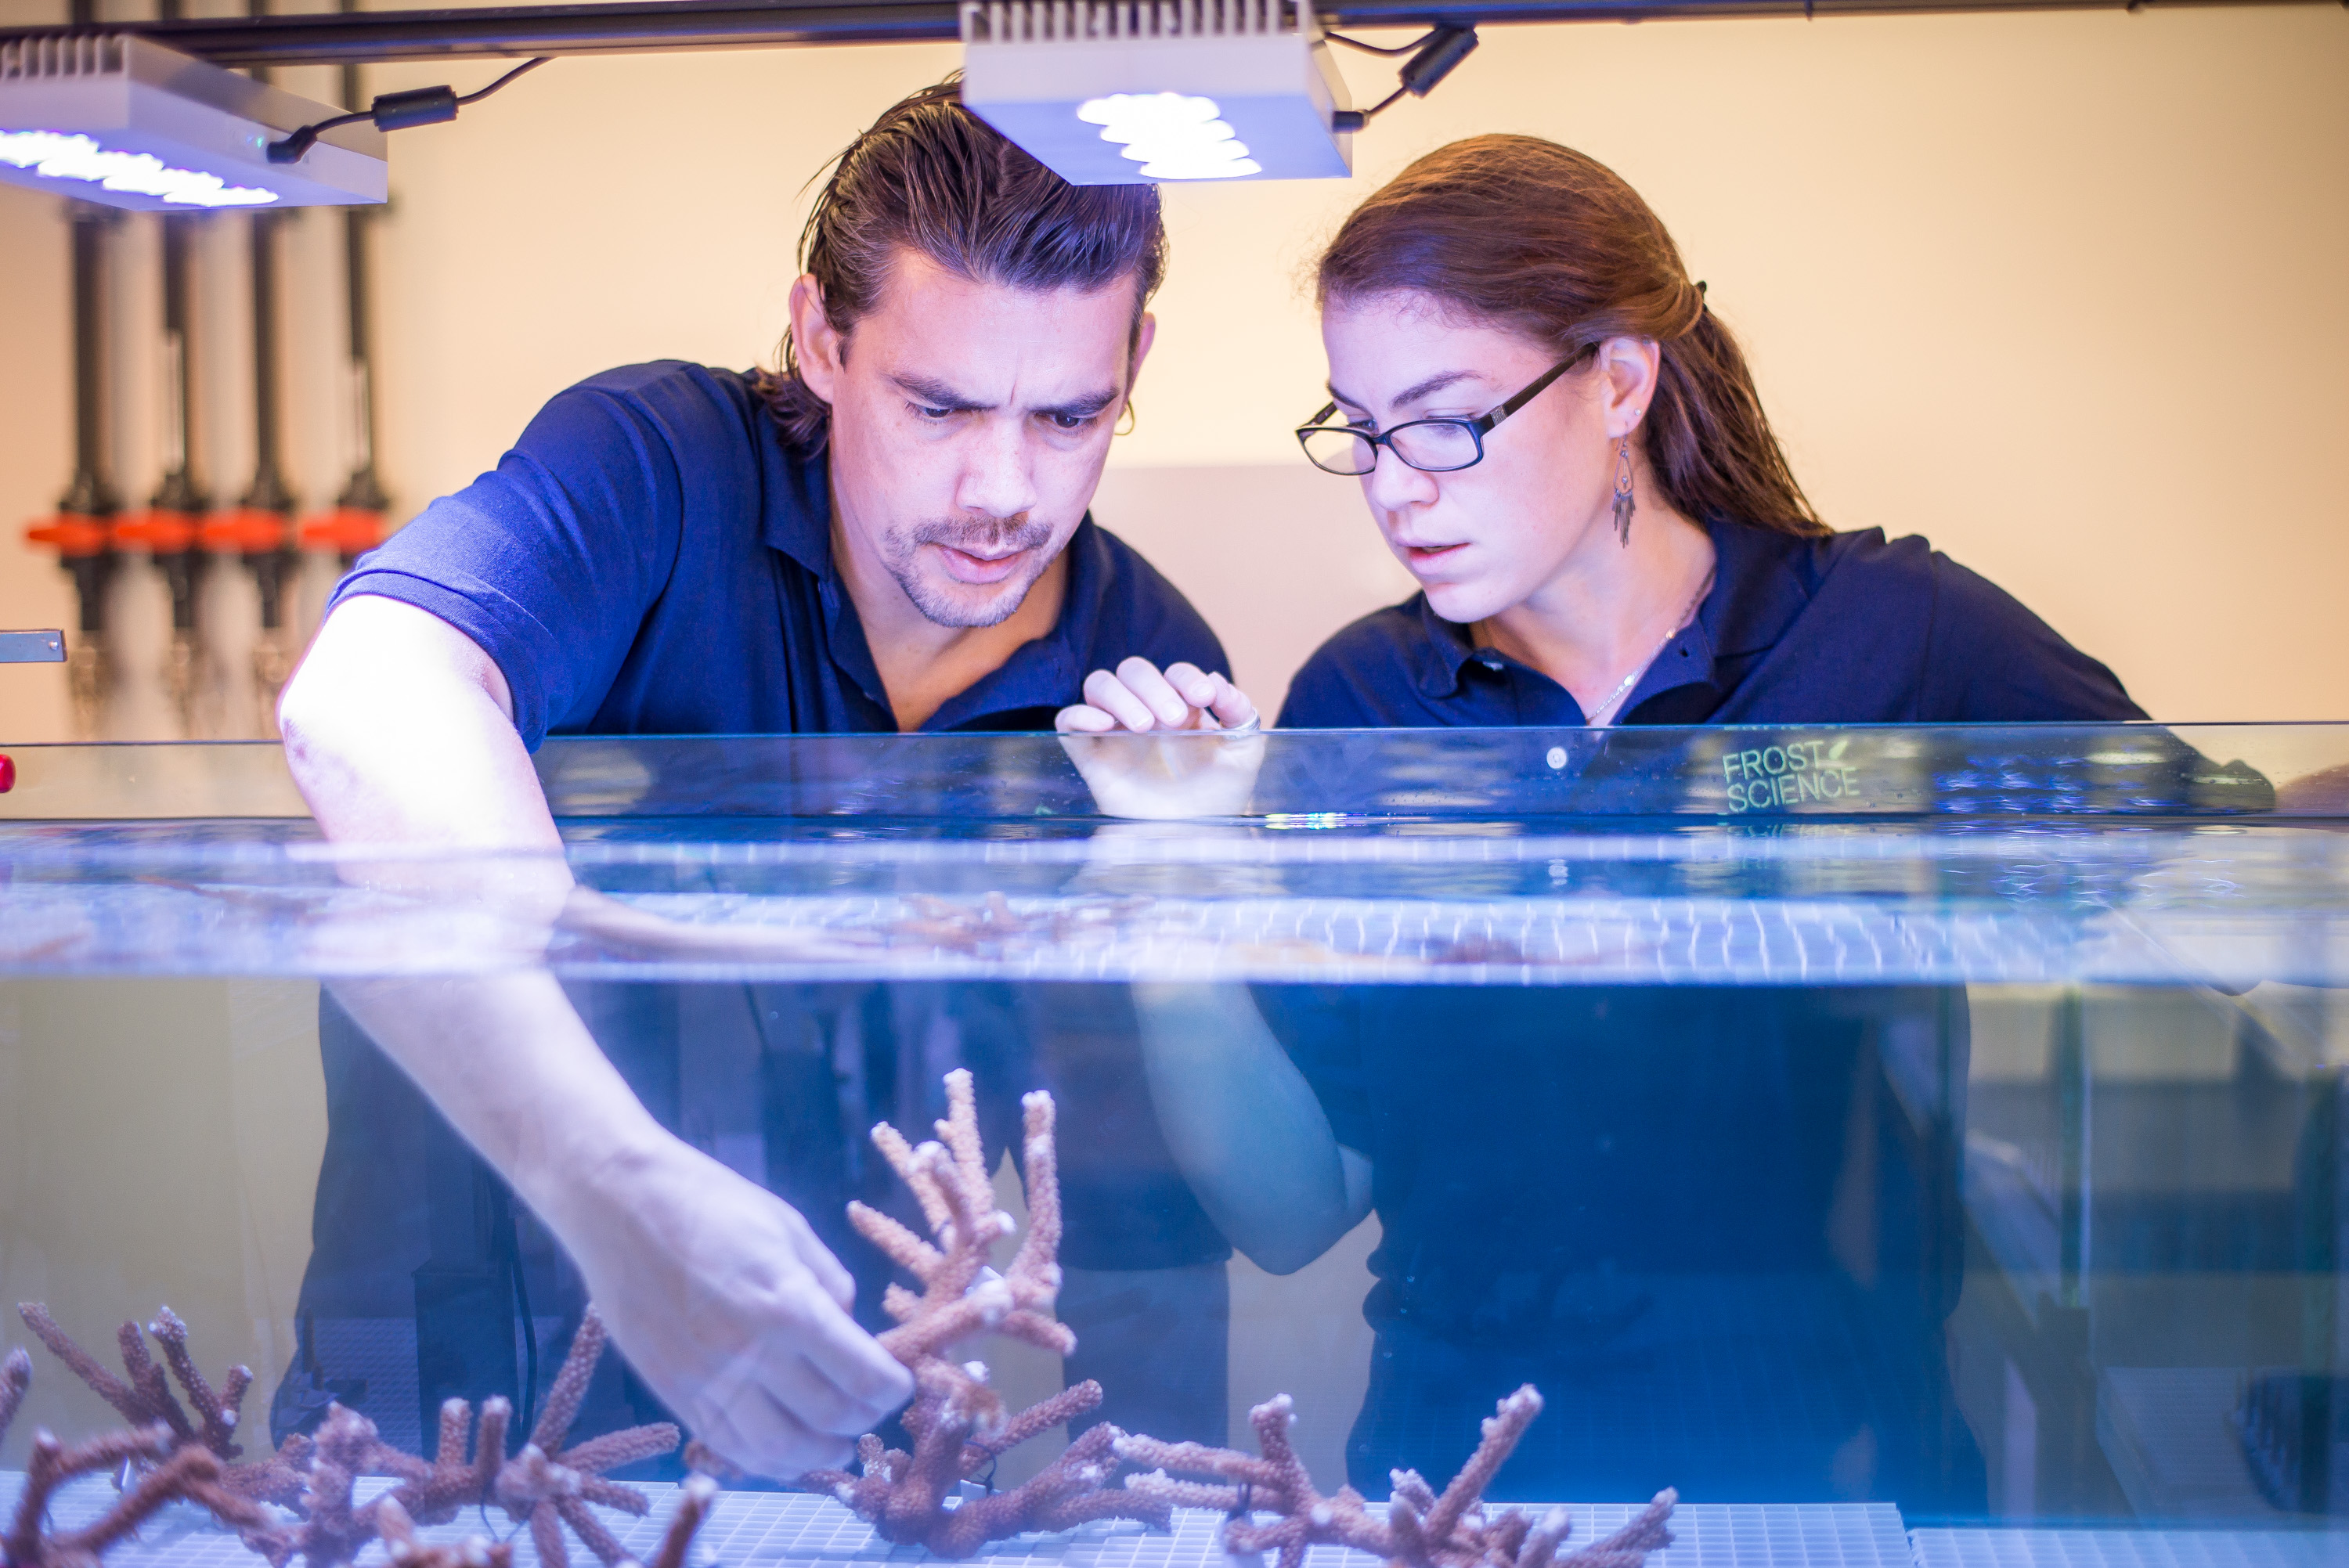 They want to make corals more climate-change resilient, visit them at the Inventors in Residence Lab